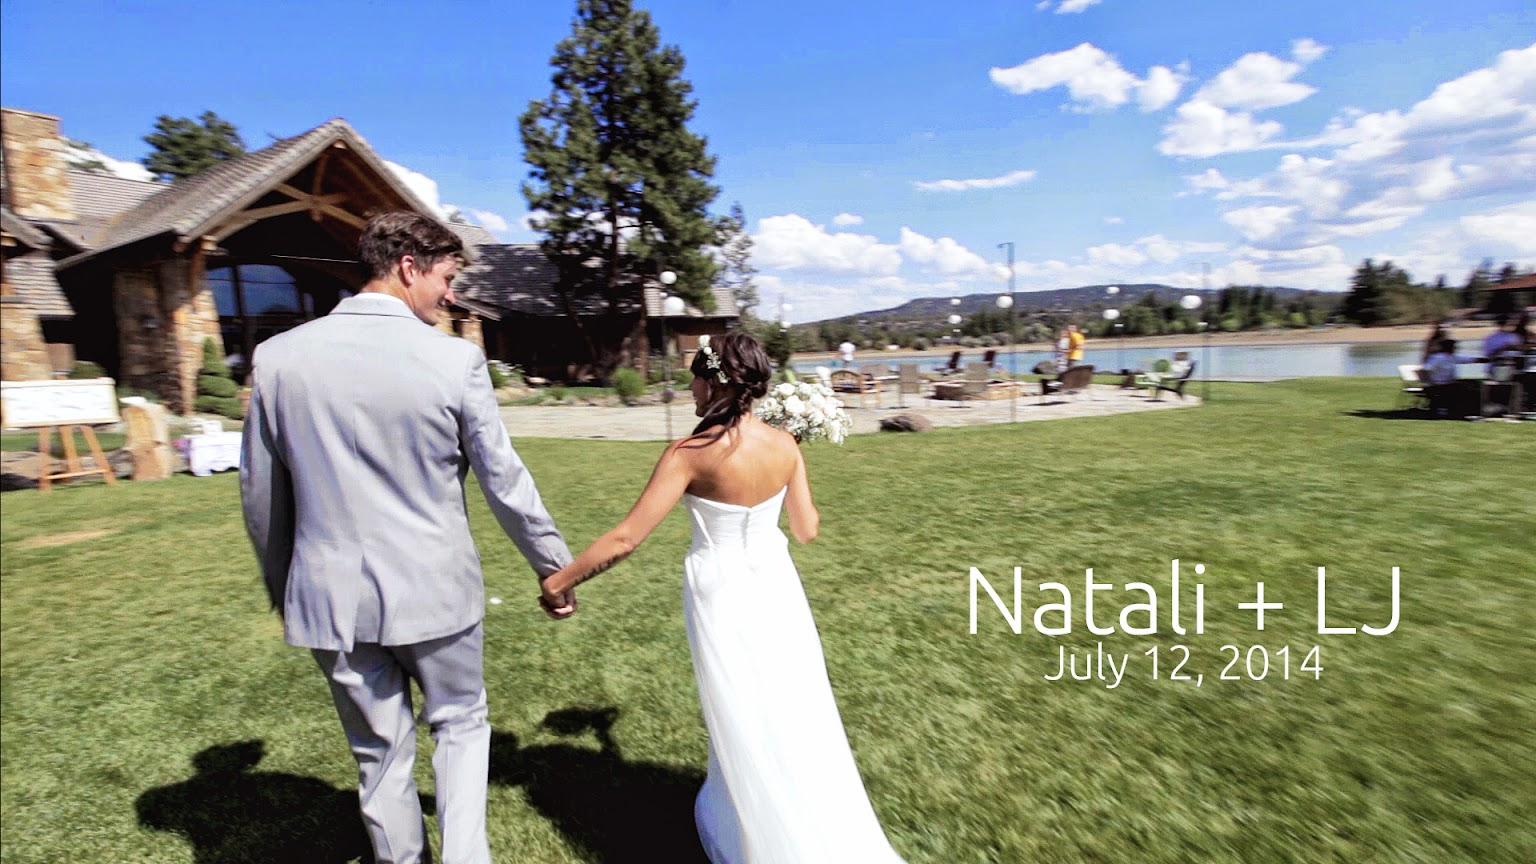 Natali + LJ - A BlueCake Films Wedding Film